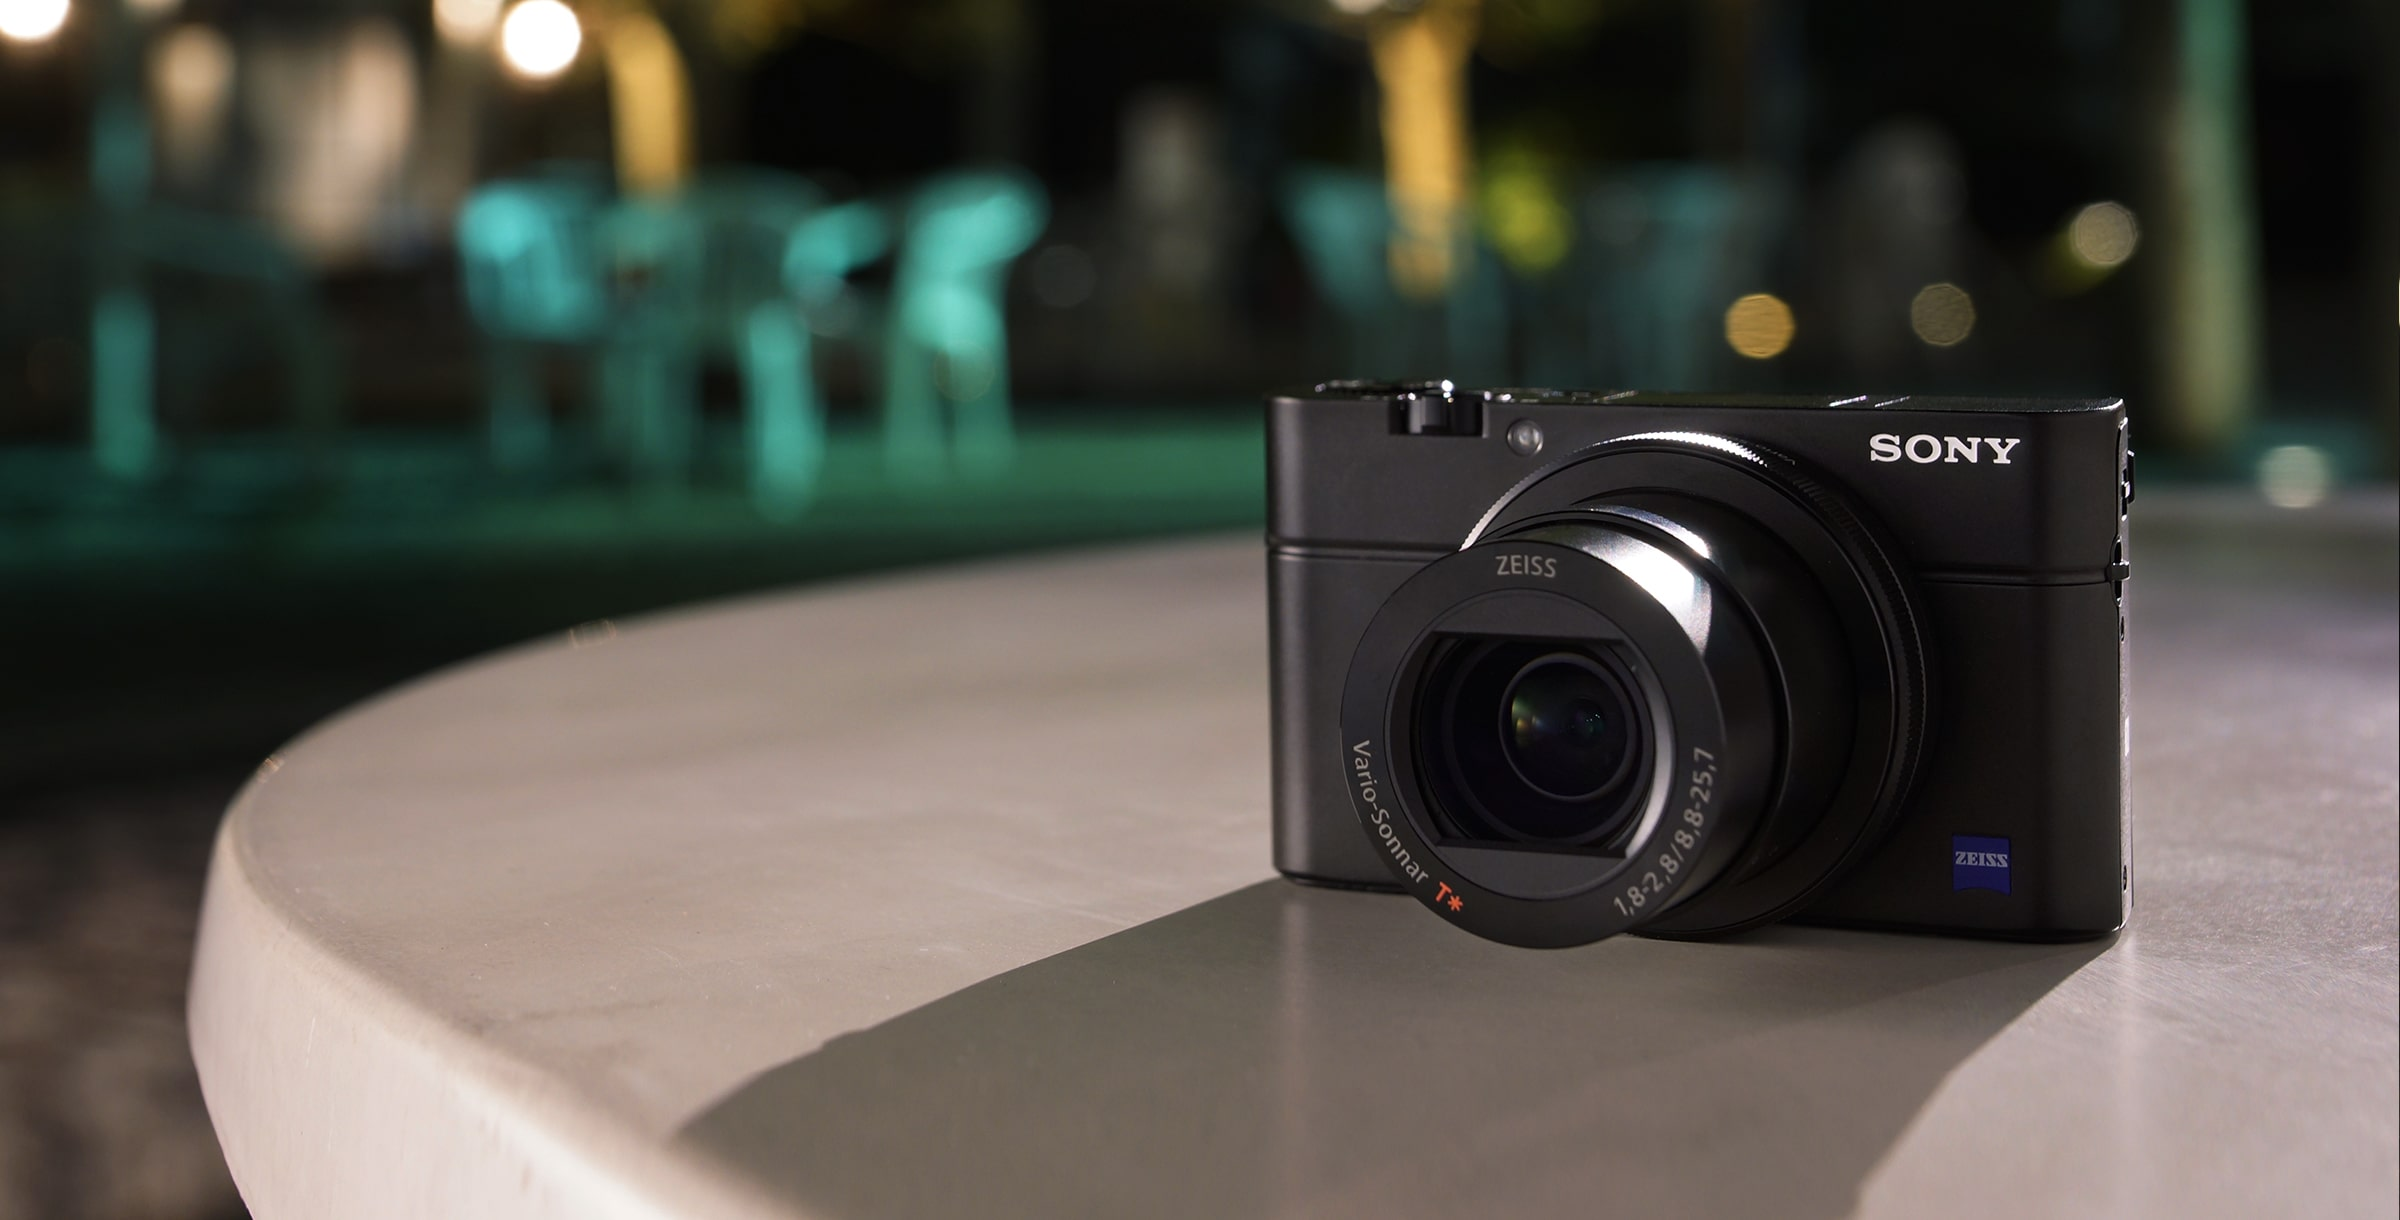 RX100 III Advanced Camera with 1.0-type sensor in action